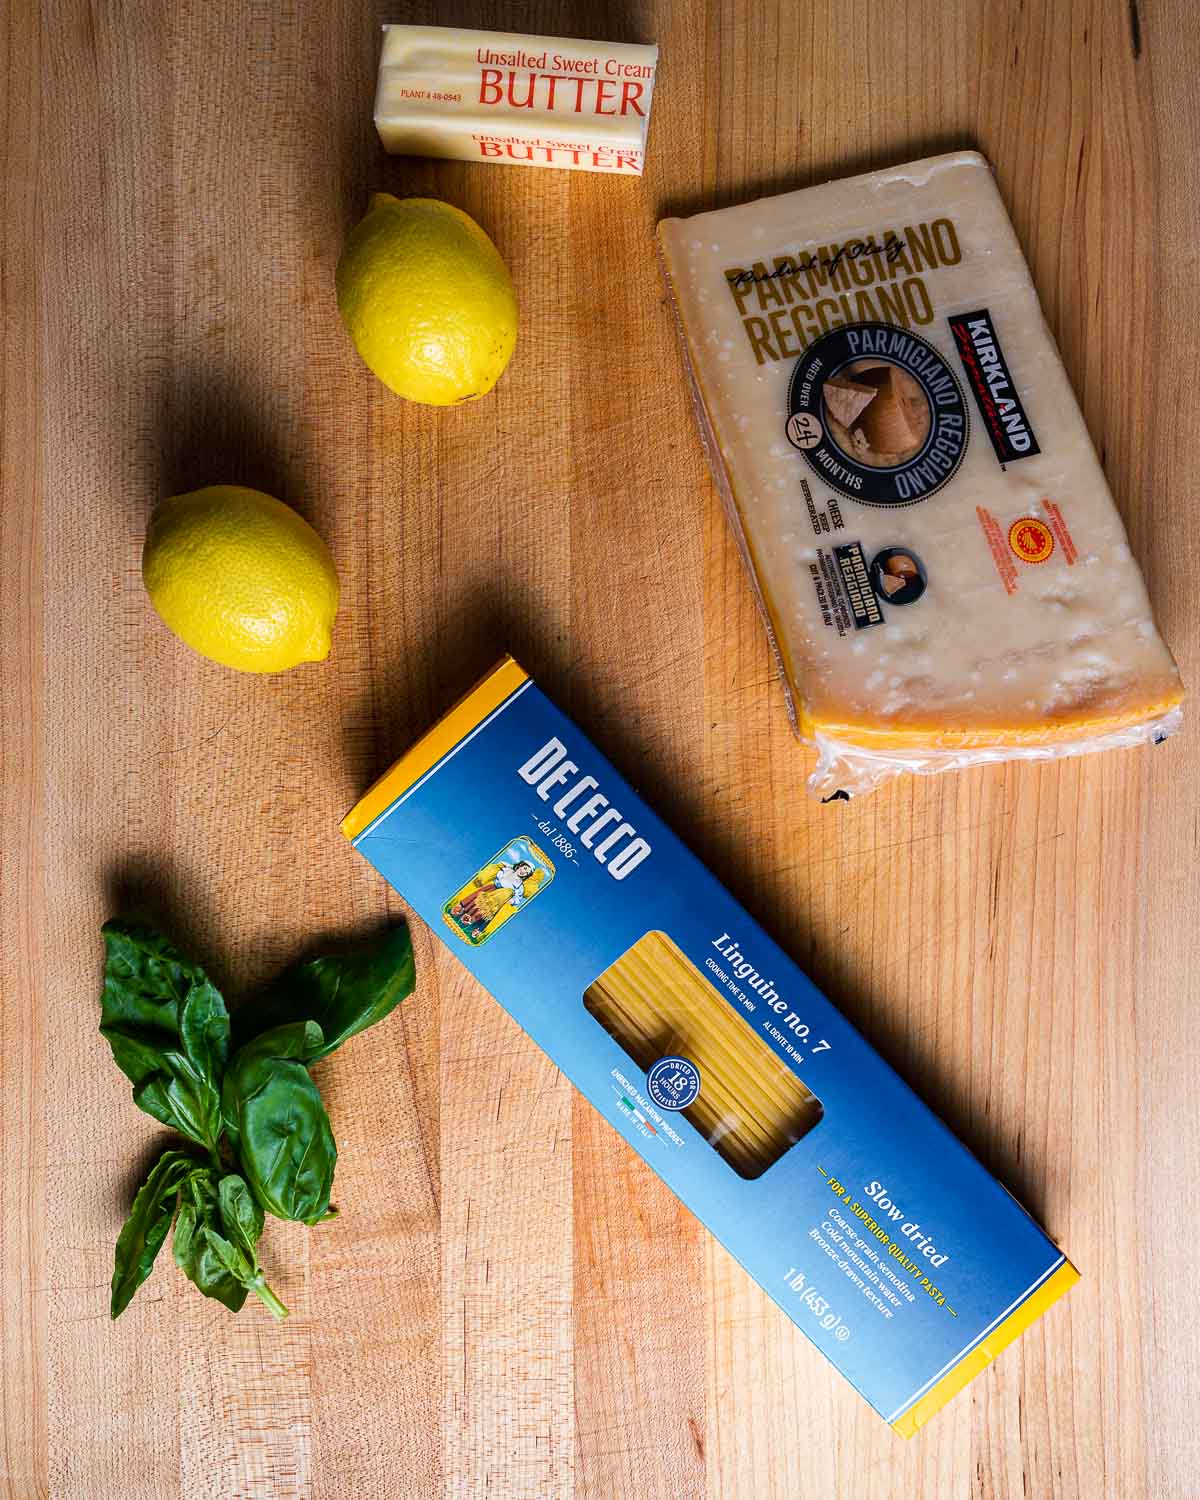 Ingredients shown: butter, lemons, parmesan cheese, basil, and box of linguine.